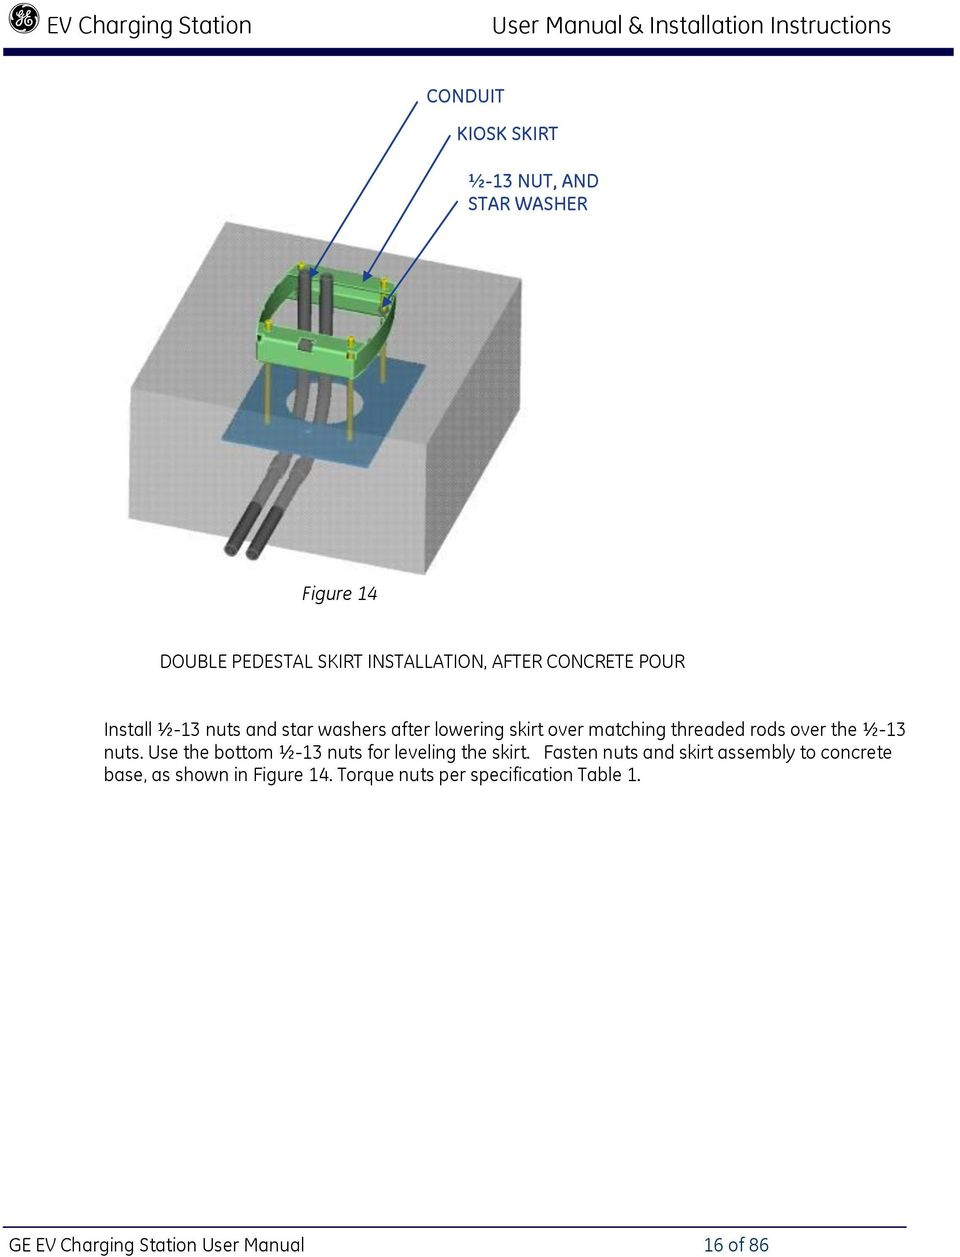 medium resolution of ge ev charging station user manual 16 of 86 threaded rods over the 13 nuts use the bottom 13 nuts